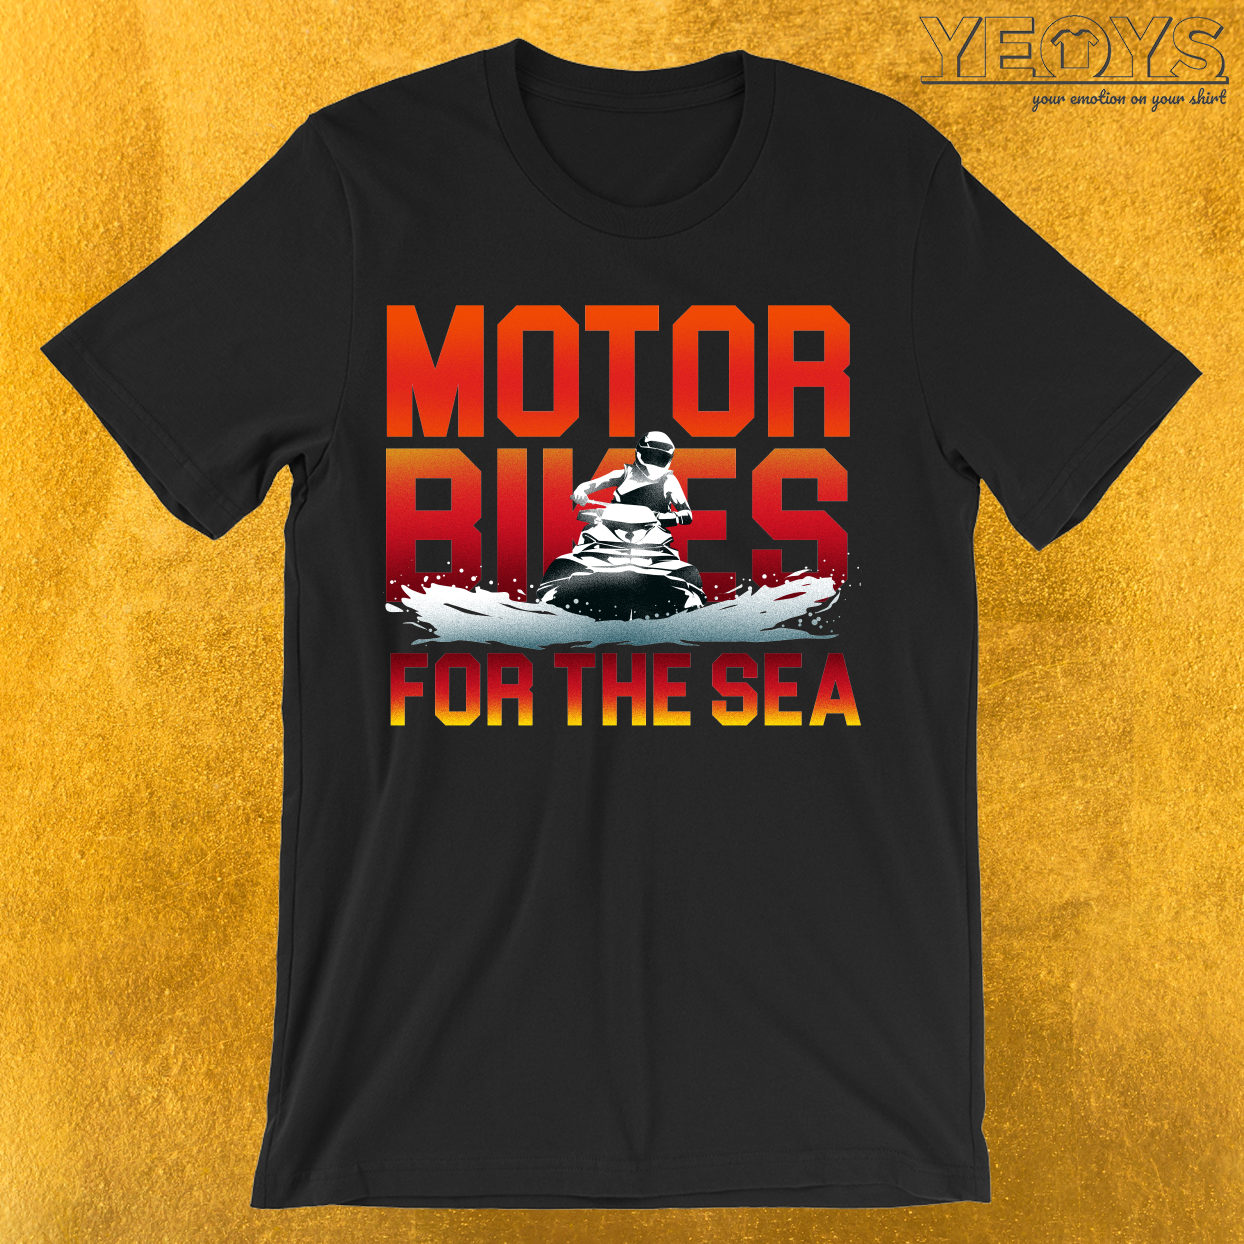 Motorbikes For The Sea T-Shirt